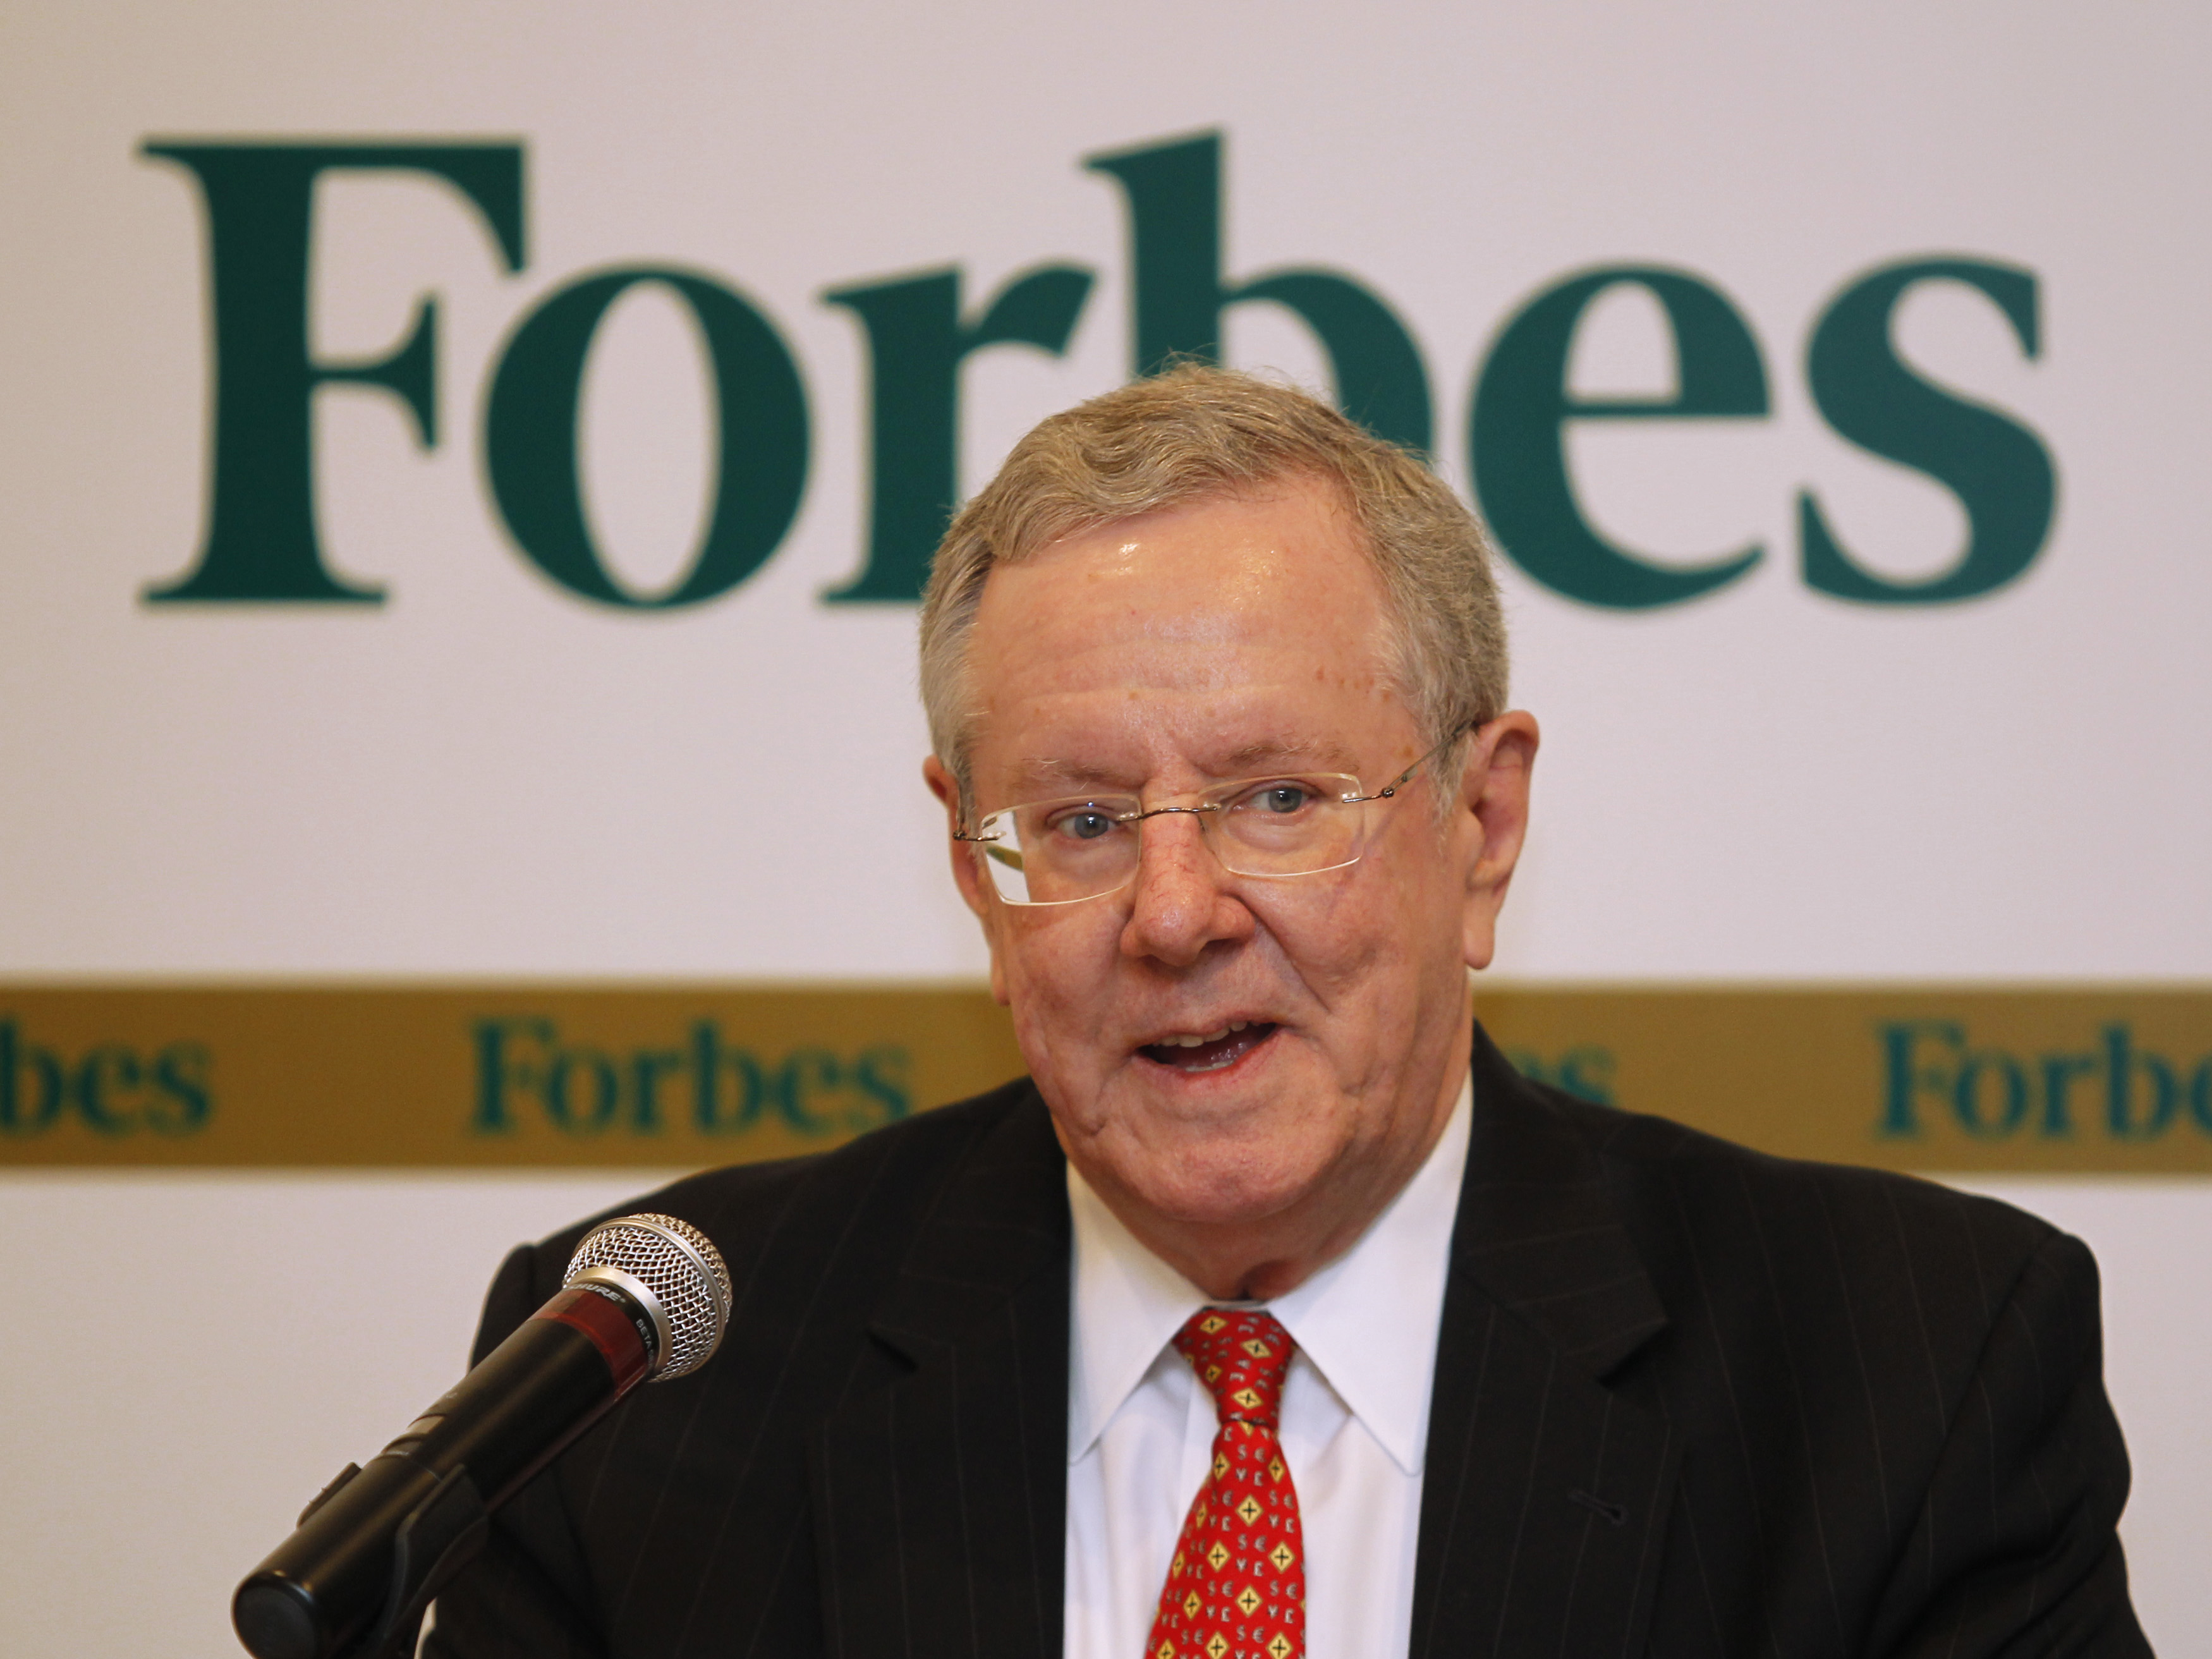 Forbes Media Chairman and Editor-in-Chief Steve Forbes speaks during a news conference before the Forbes Global CEO Conference in Kuala Lumpur September 12, 2011. REUTERS/Bazuki Muhammad (MEDIA BUSINESS SOCIETY WEALTH) - RTR2RABI